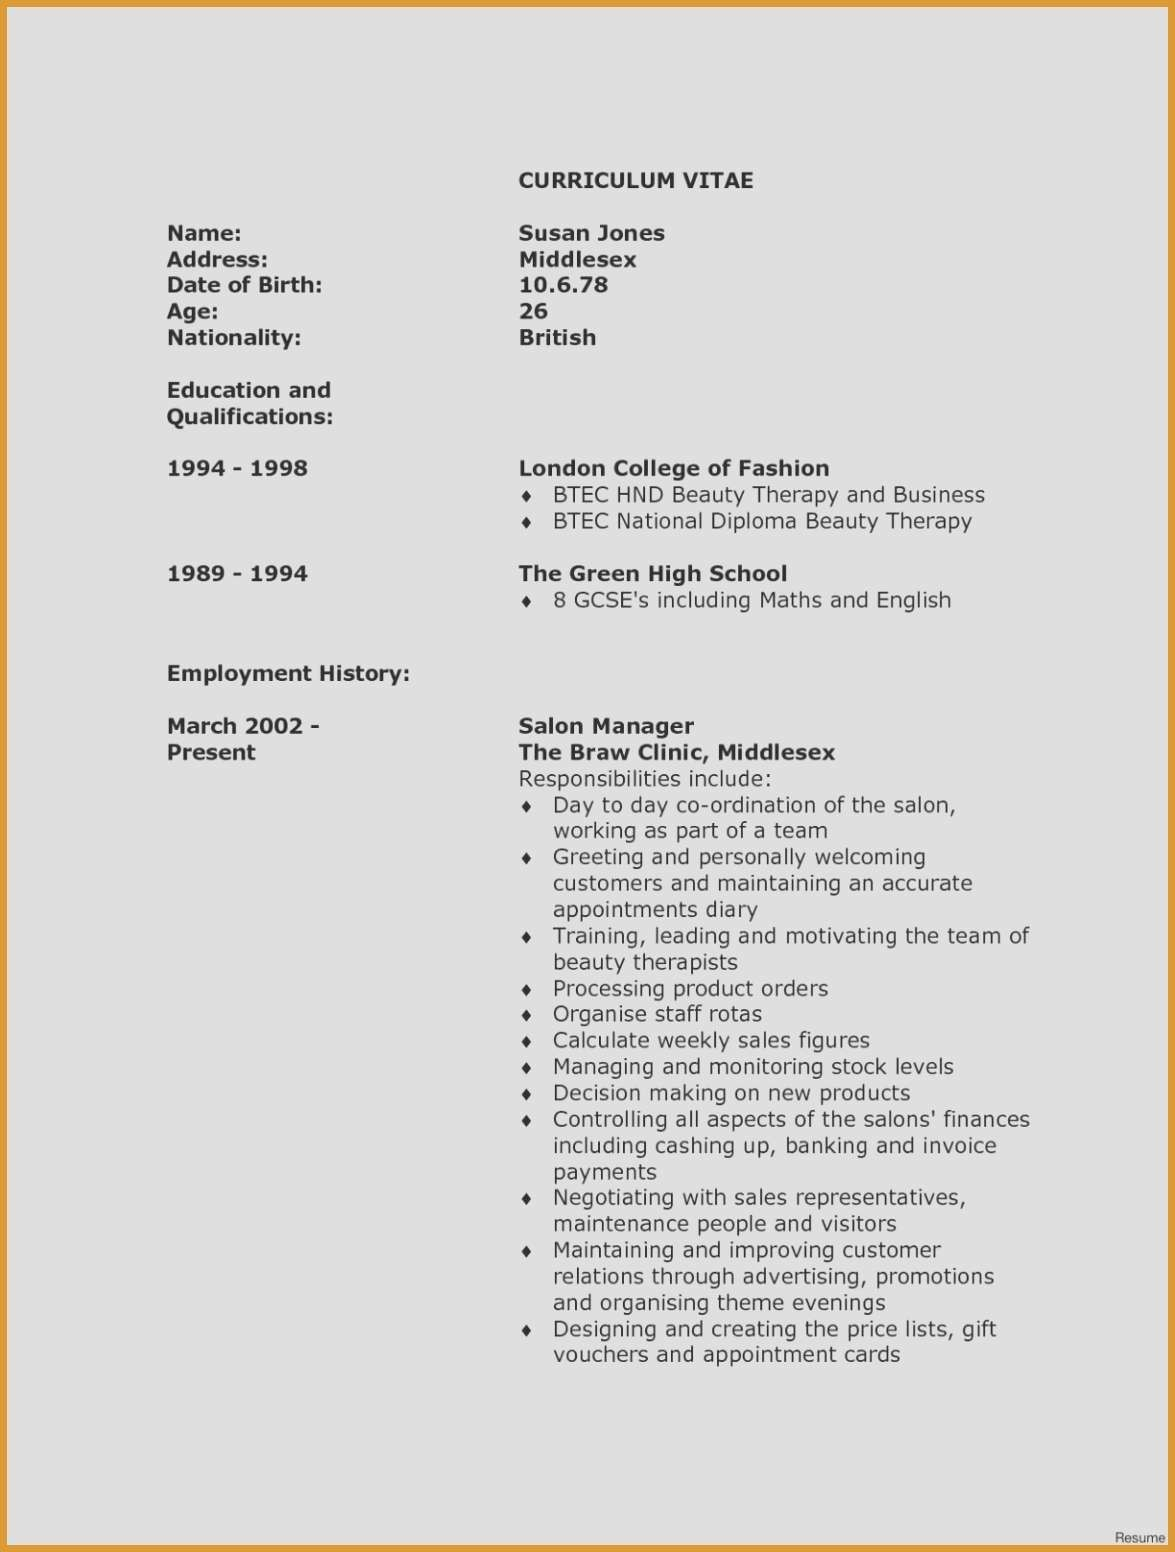 Dental assistant Resume Examples - Resume for Dental assistant Luxury 30 Collection Dental assistant